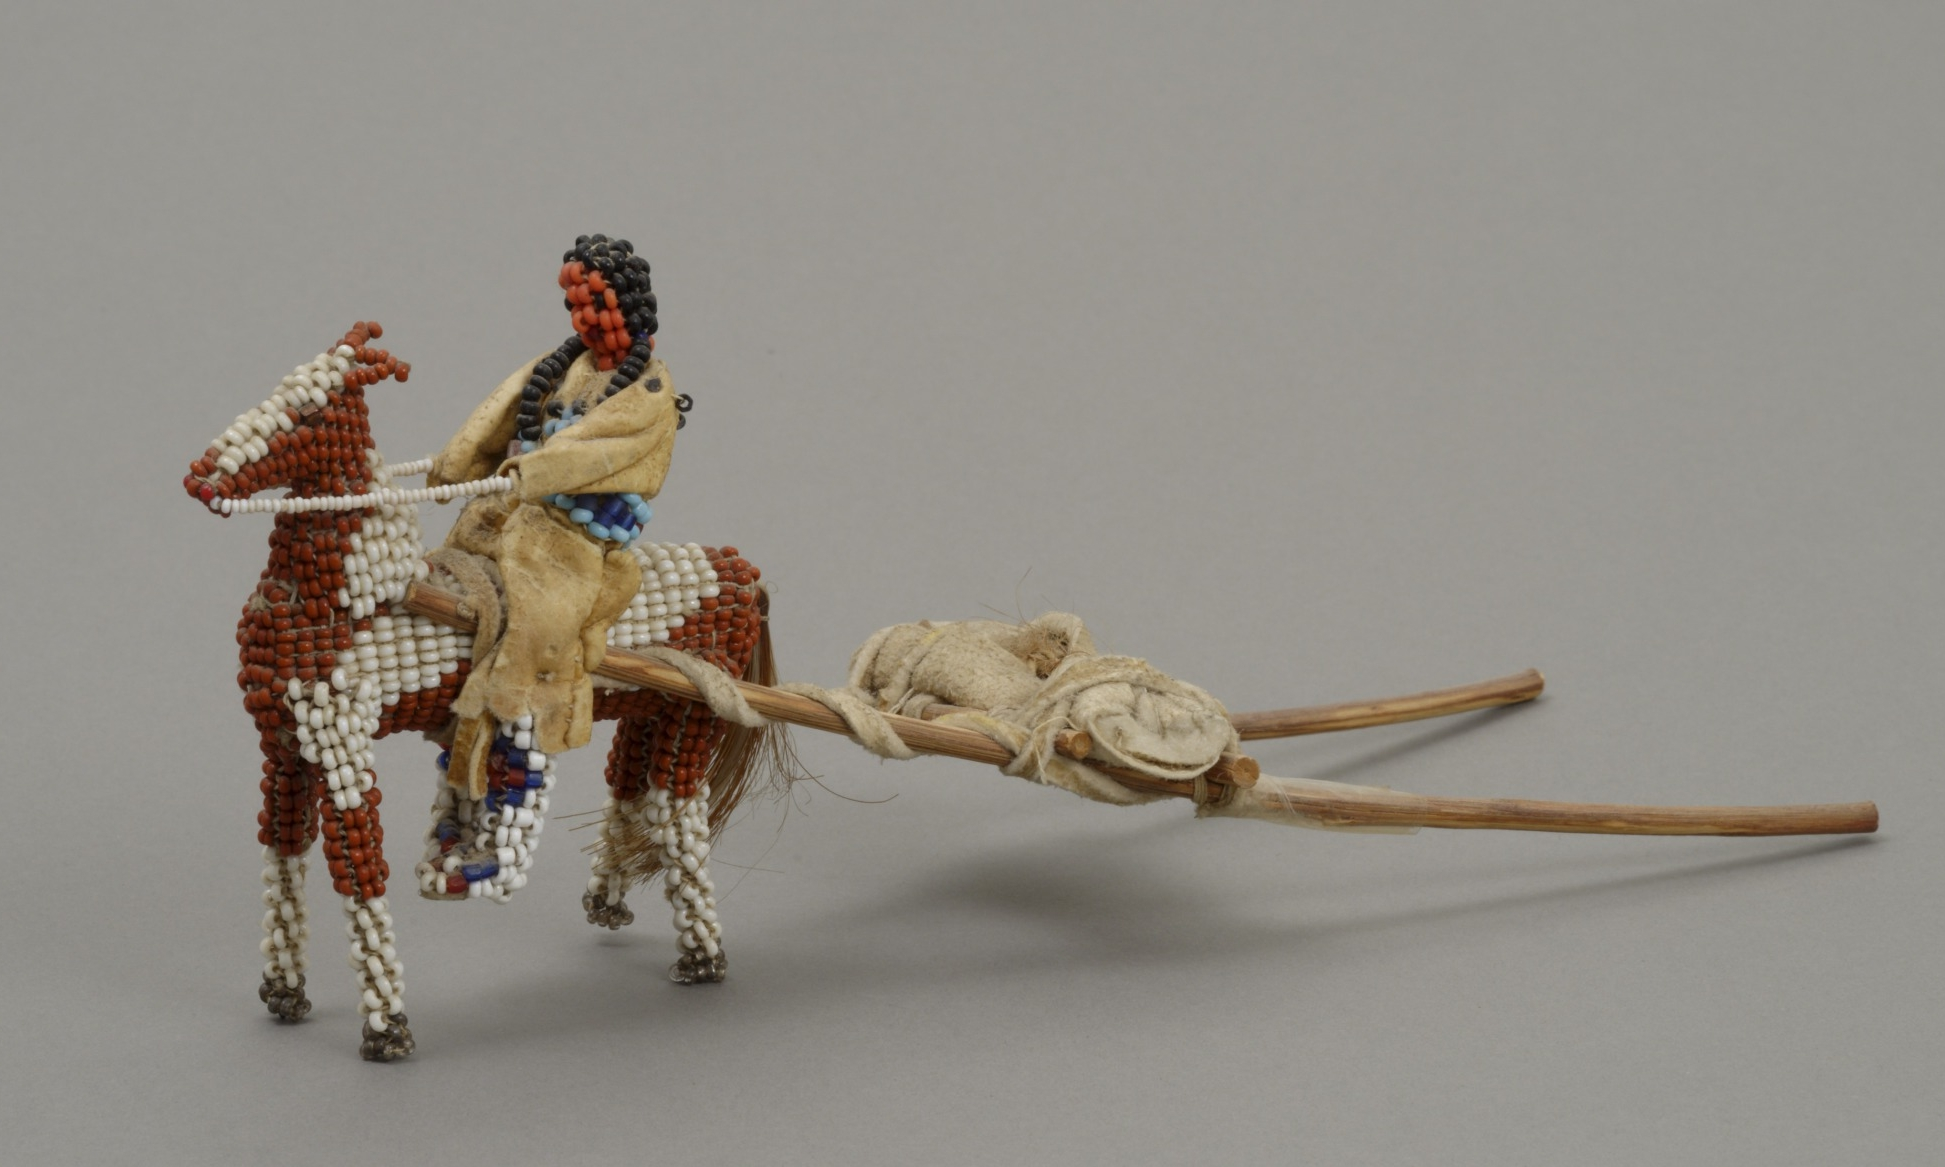 Lena Brown, American (Inunaina), born 1892 , doll representing an Inunaina woman, child, and horse, 1946. Glass trade beads, buckskin, horsehair, wood poles, string, and metal wire, 3 3/16 × 2 7/16 × 7 7/8 in. Hood Museum of Art, Dartmouth College: The Wellington Indian Doll Collection, Gift of Barbara Wellington Wells; 987.35.26800.